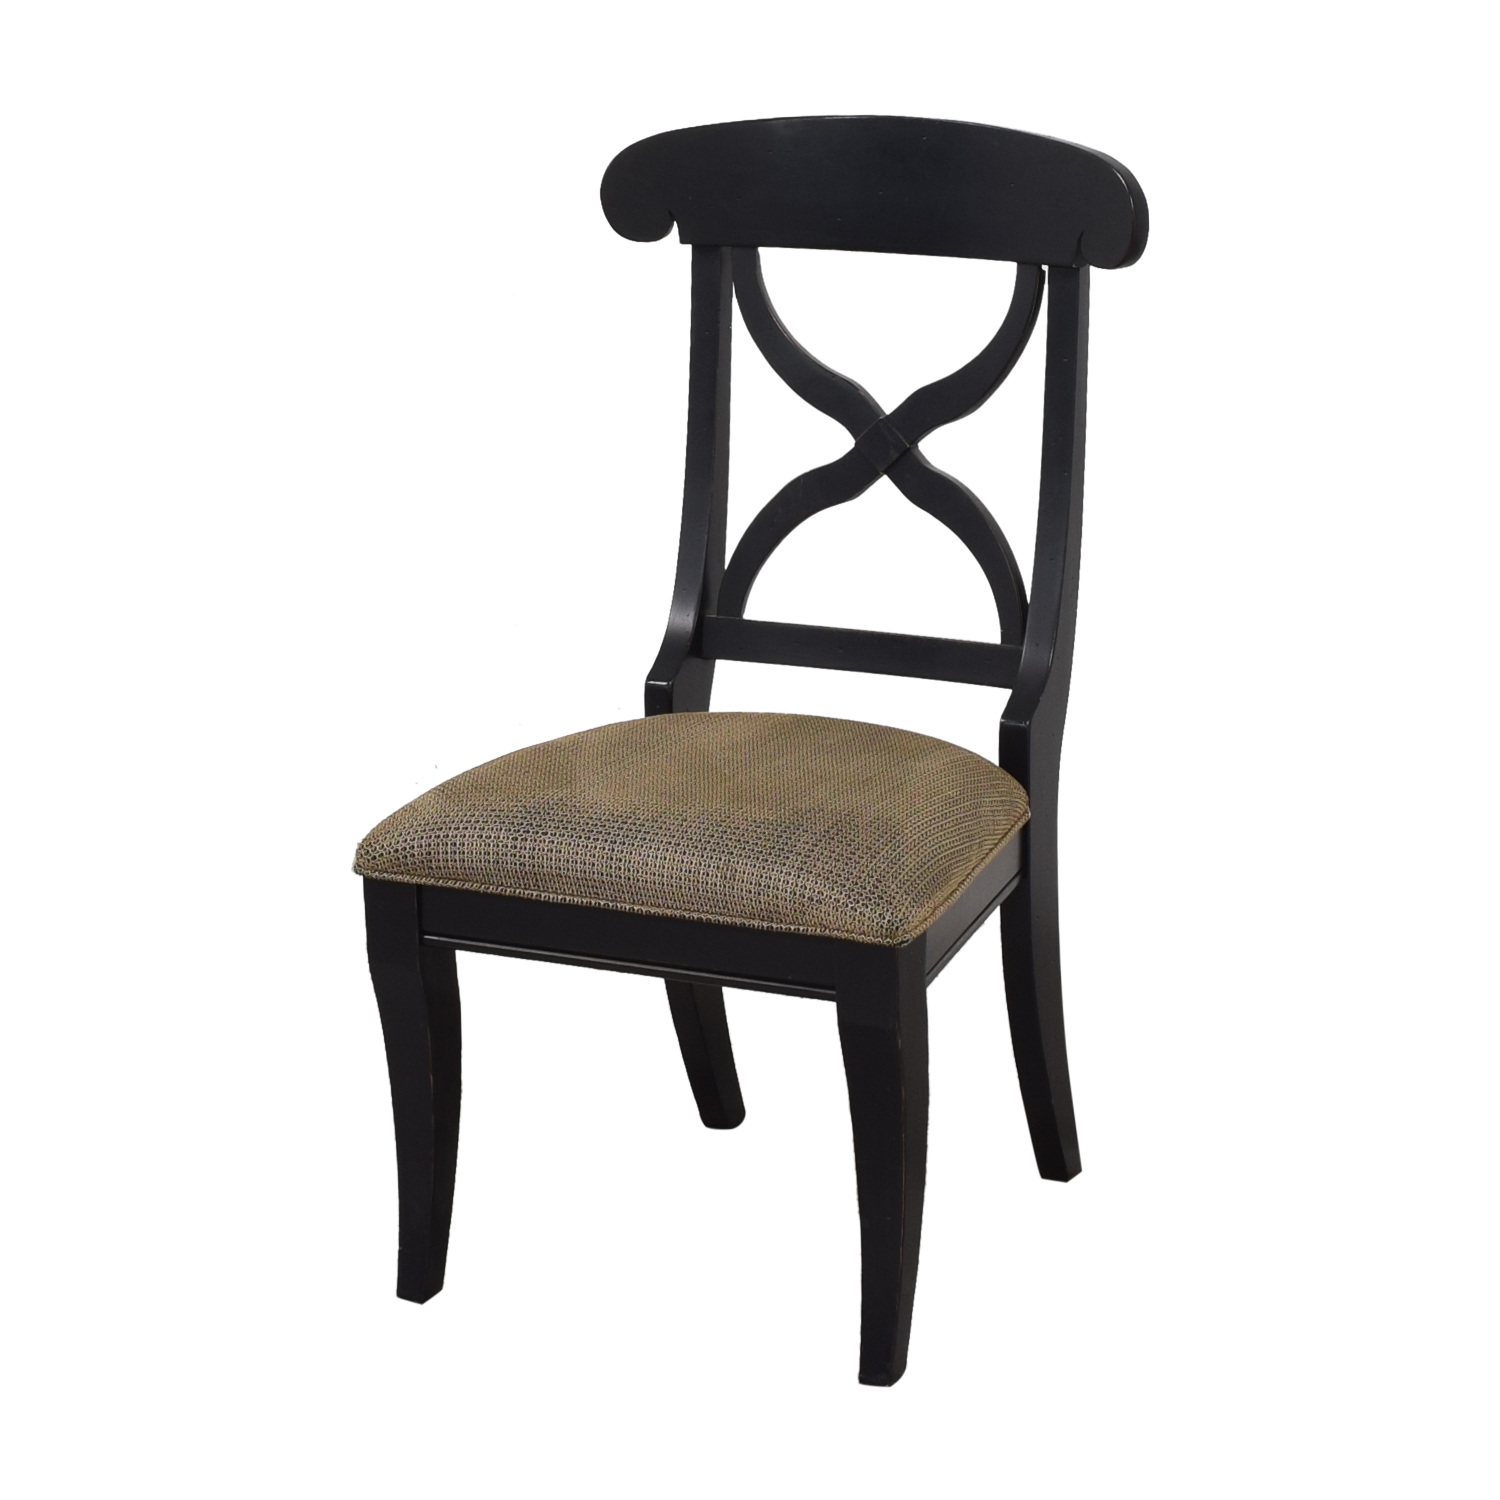 Fortunoff Wooden Dining Chairs / Tables